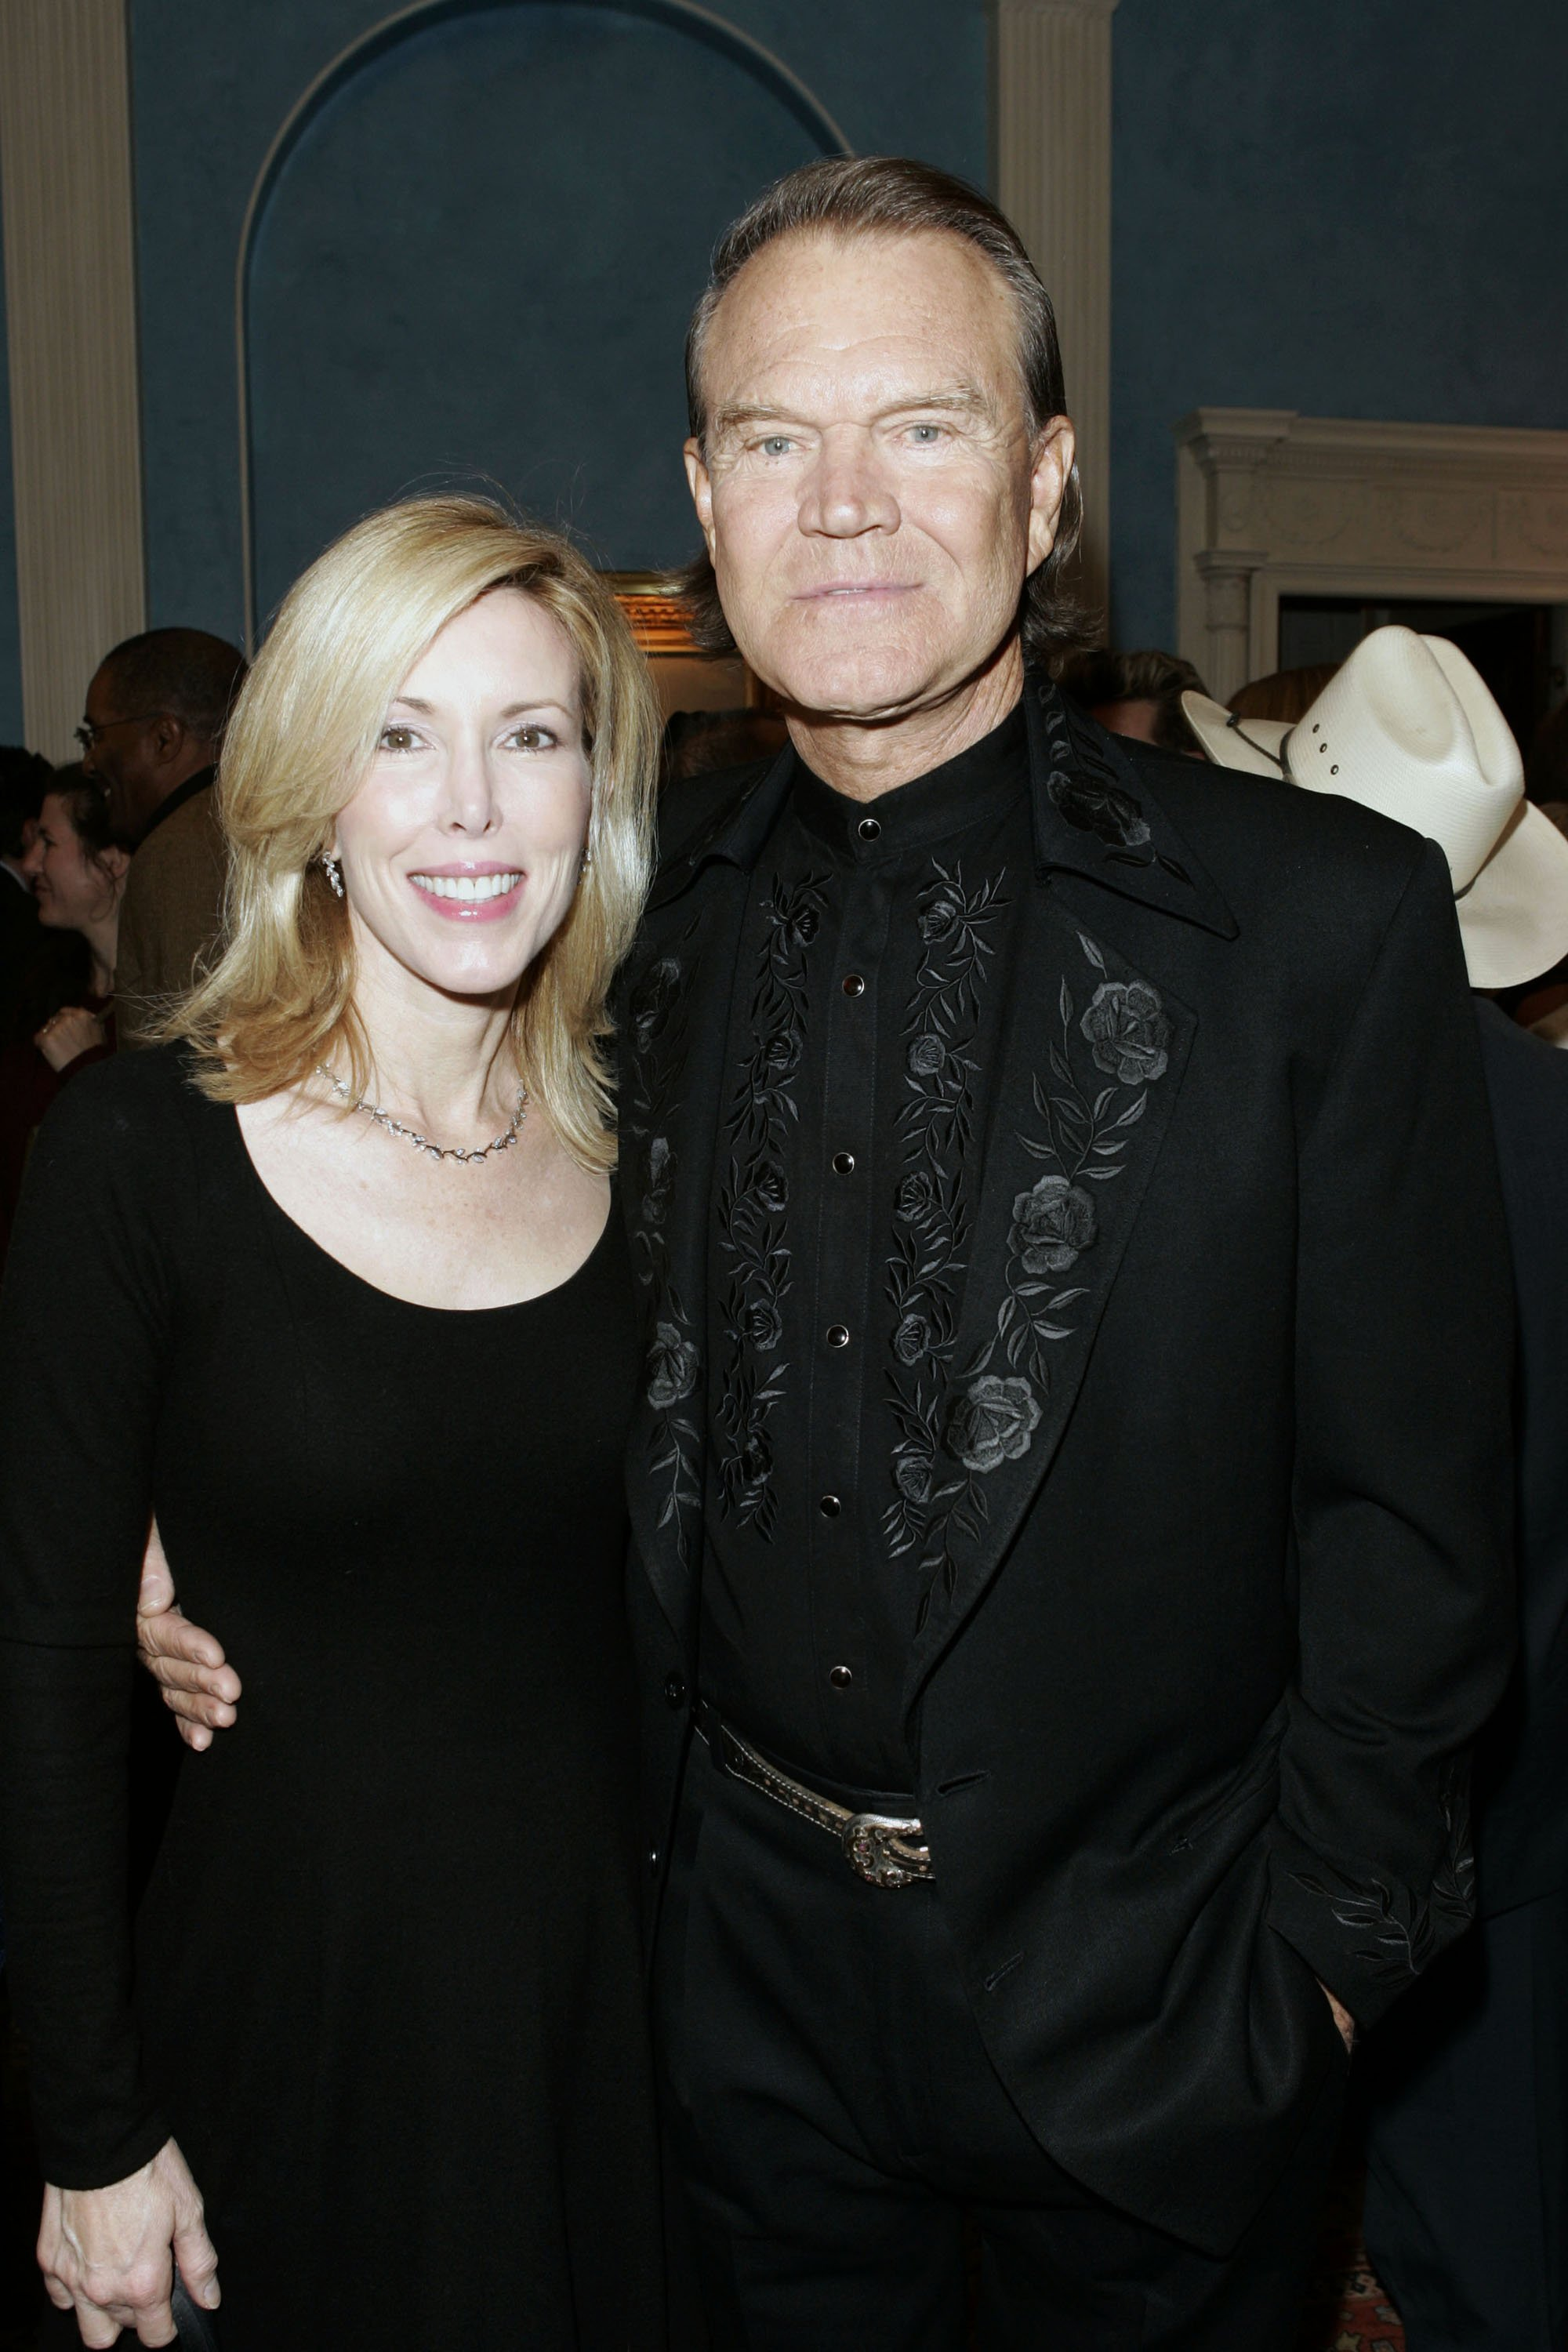 Glenn Campbell and wife Kim Campbell at the 39th CMA Awards on November 14, 2005 | Photo: GettyImages